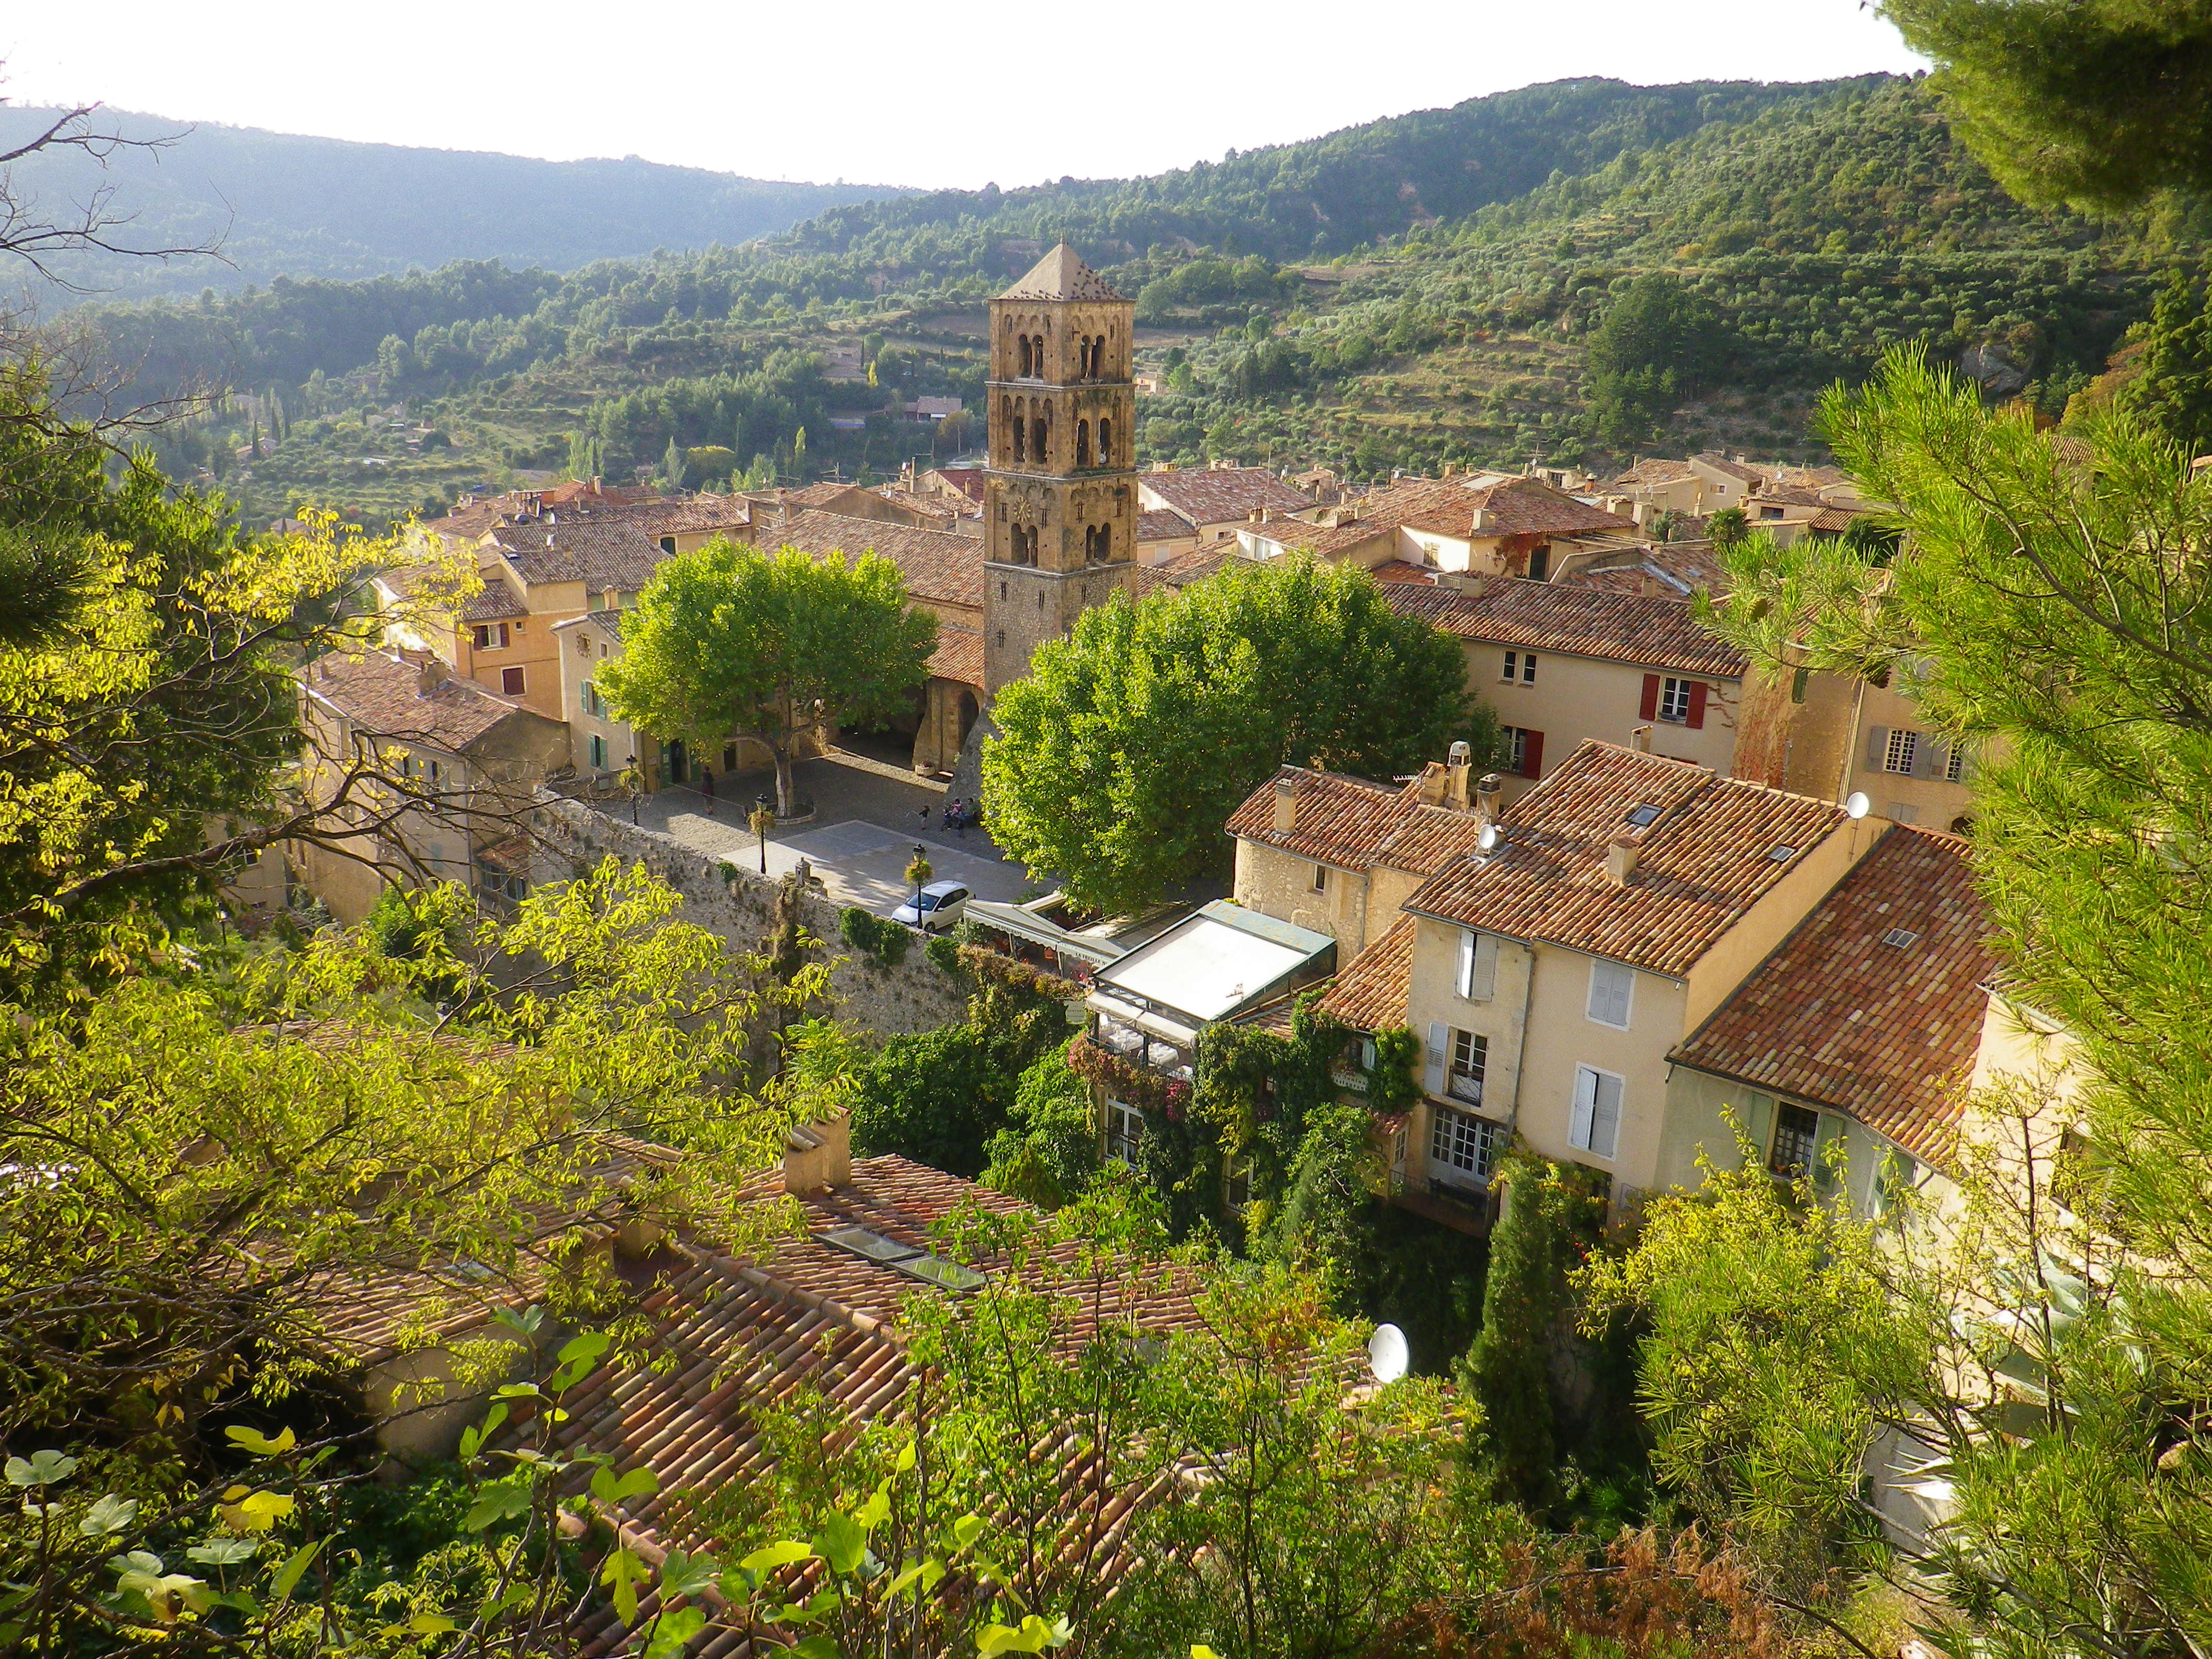 Moustiers-Sainte-Marie village in Provence